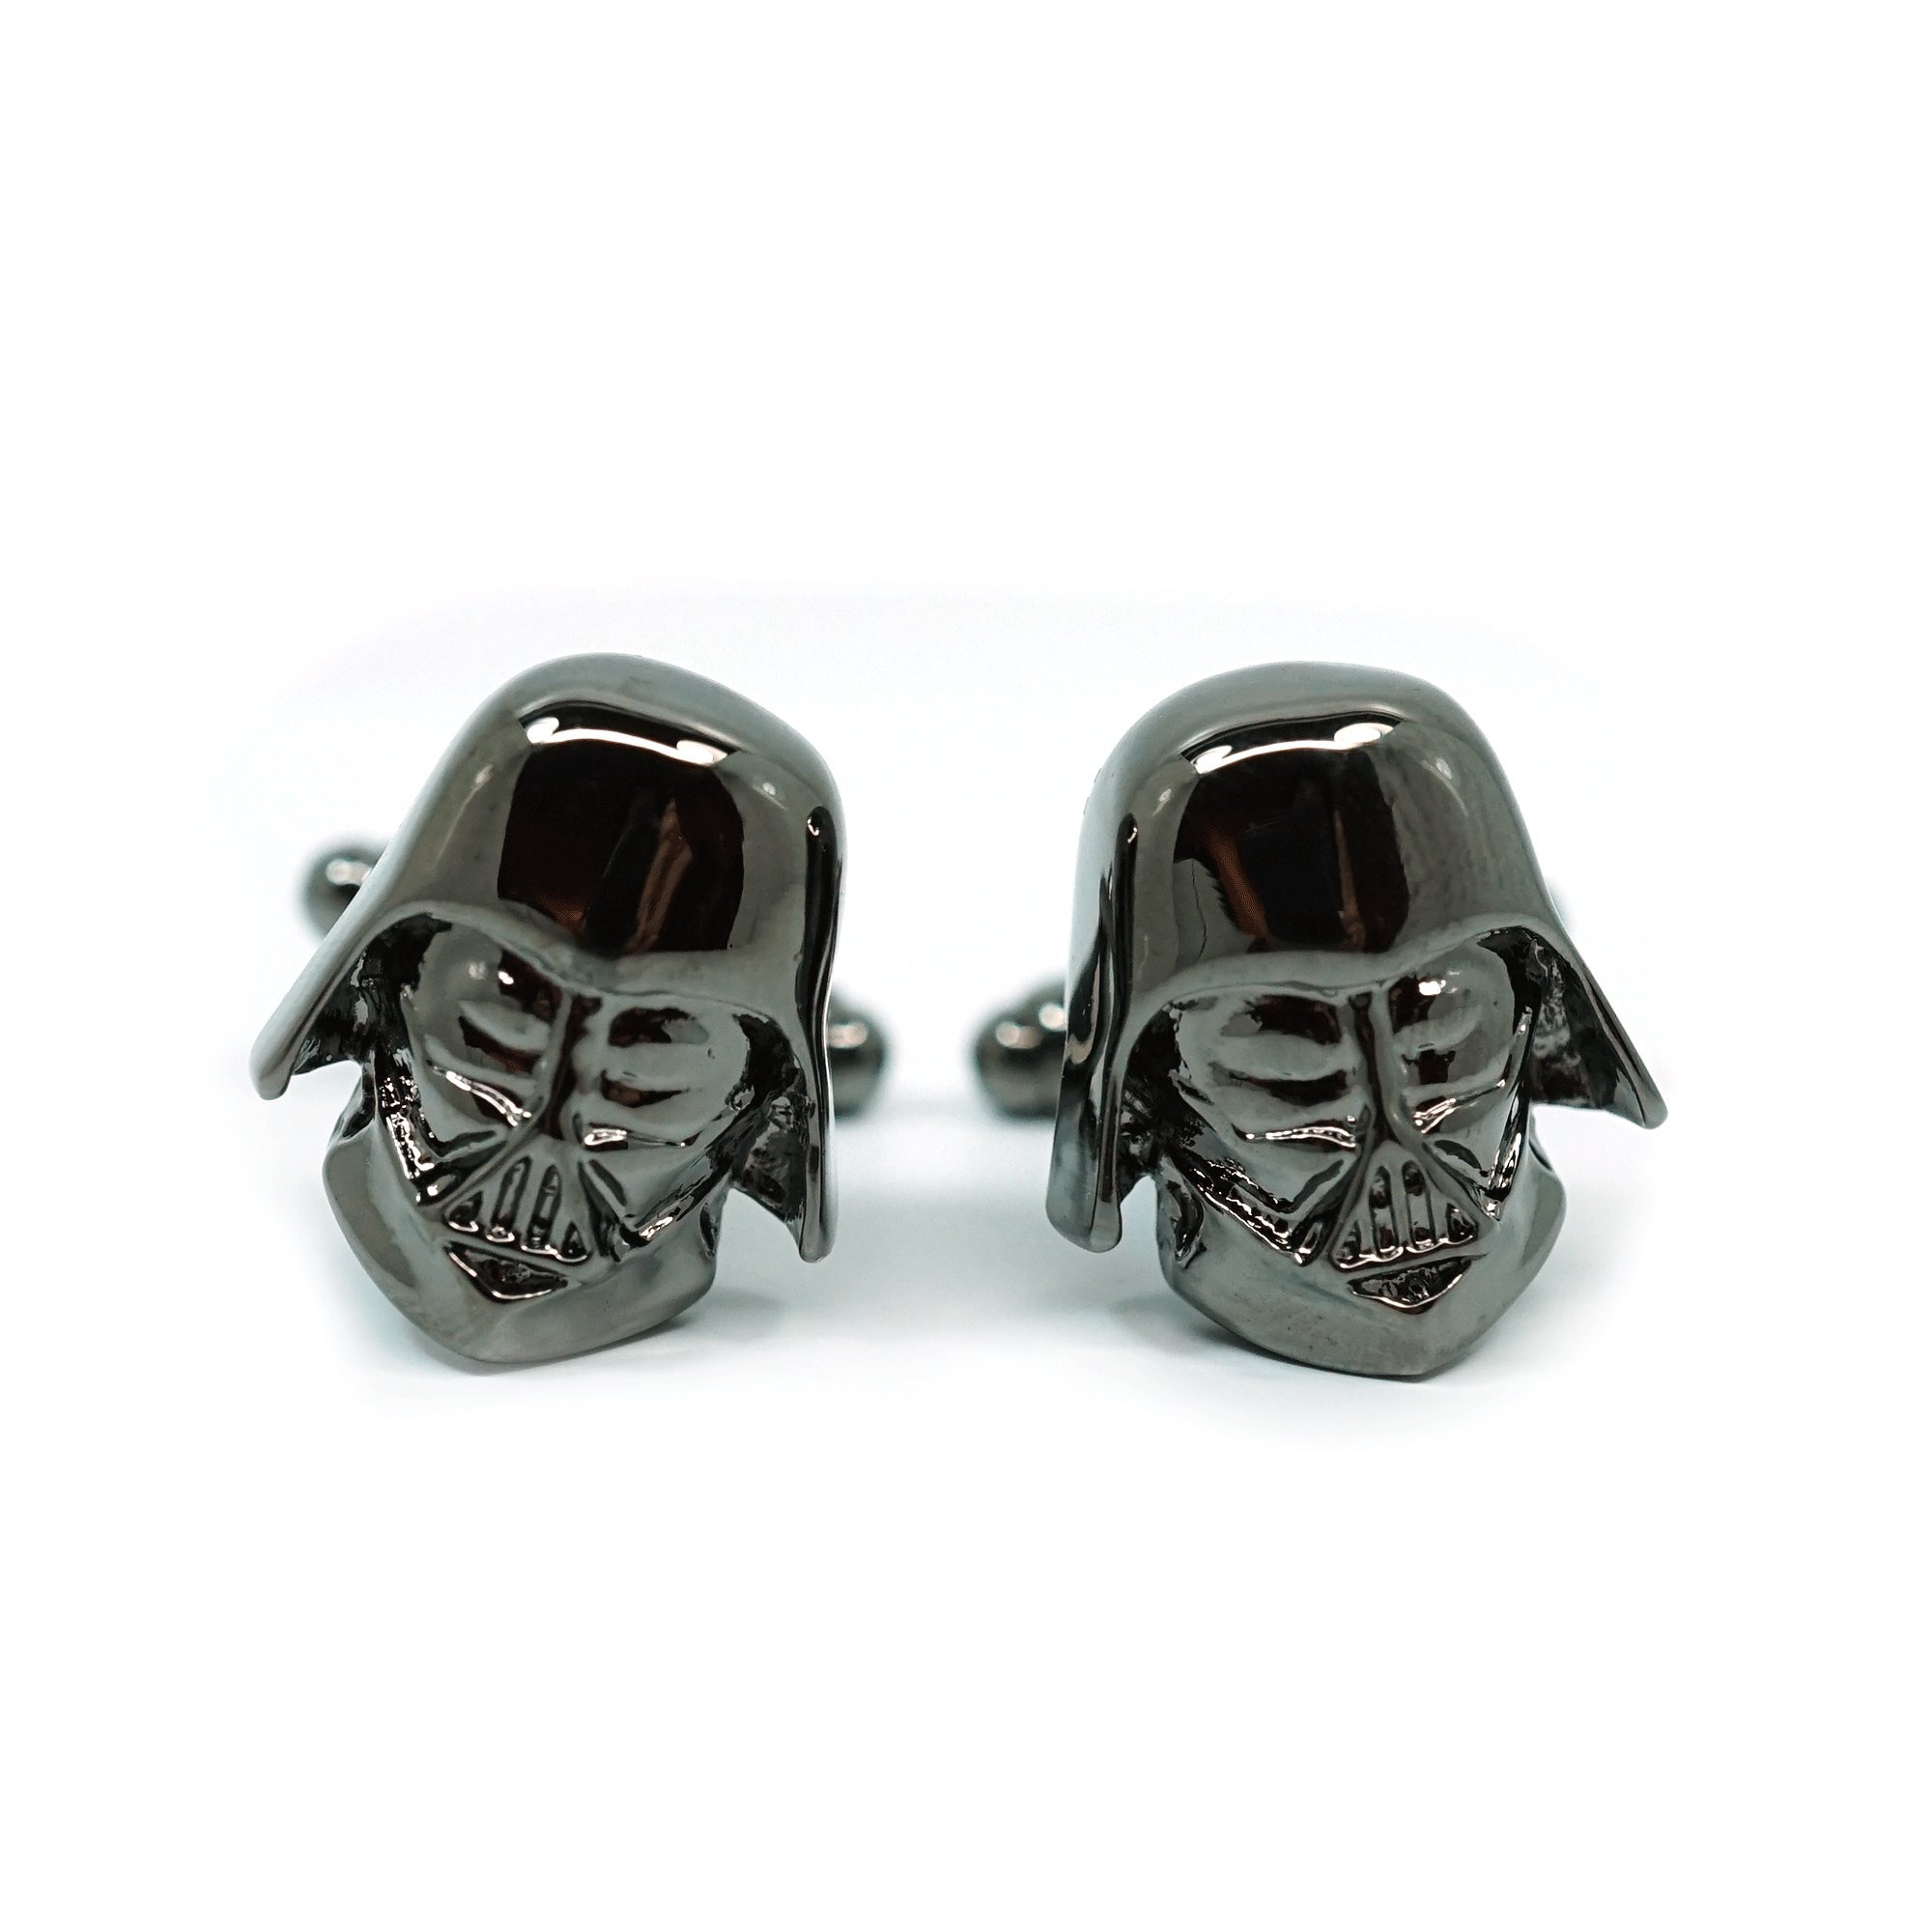 Teri's Boutique Men's Jewelry Star Wars Darth Vader Head Dark Gray Gunmetal Cufflinks Pair w/ Gift Box